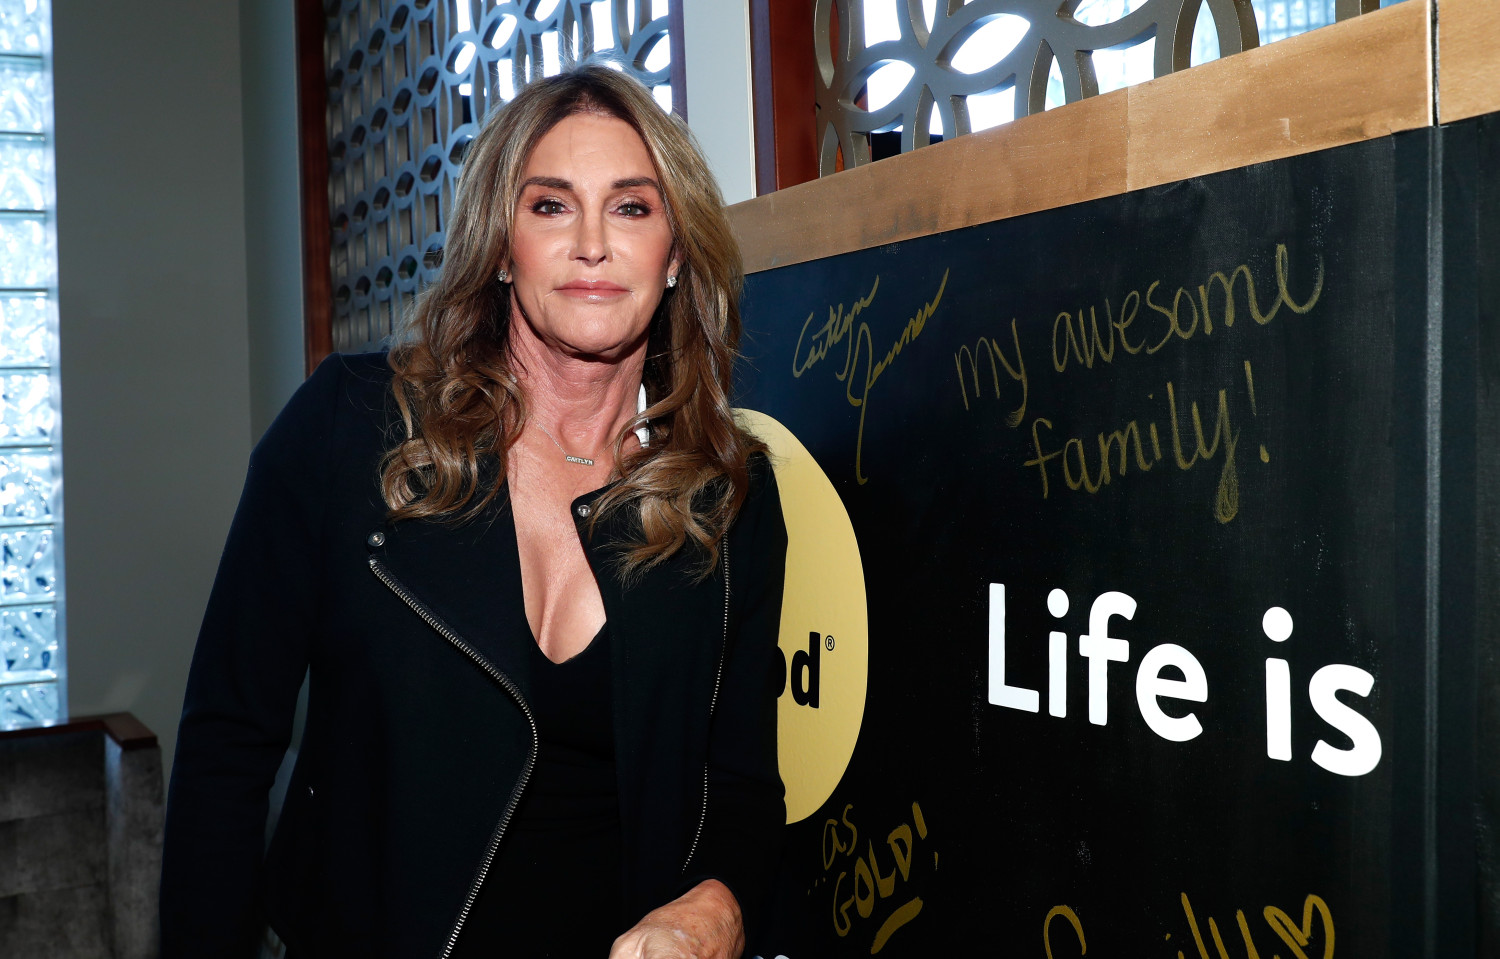 Caitlyn Jenner refused to accept the offer to play golf with President Trump (Image: Getty - under licence)